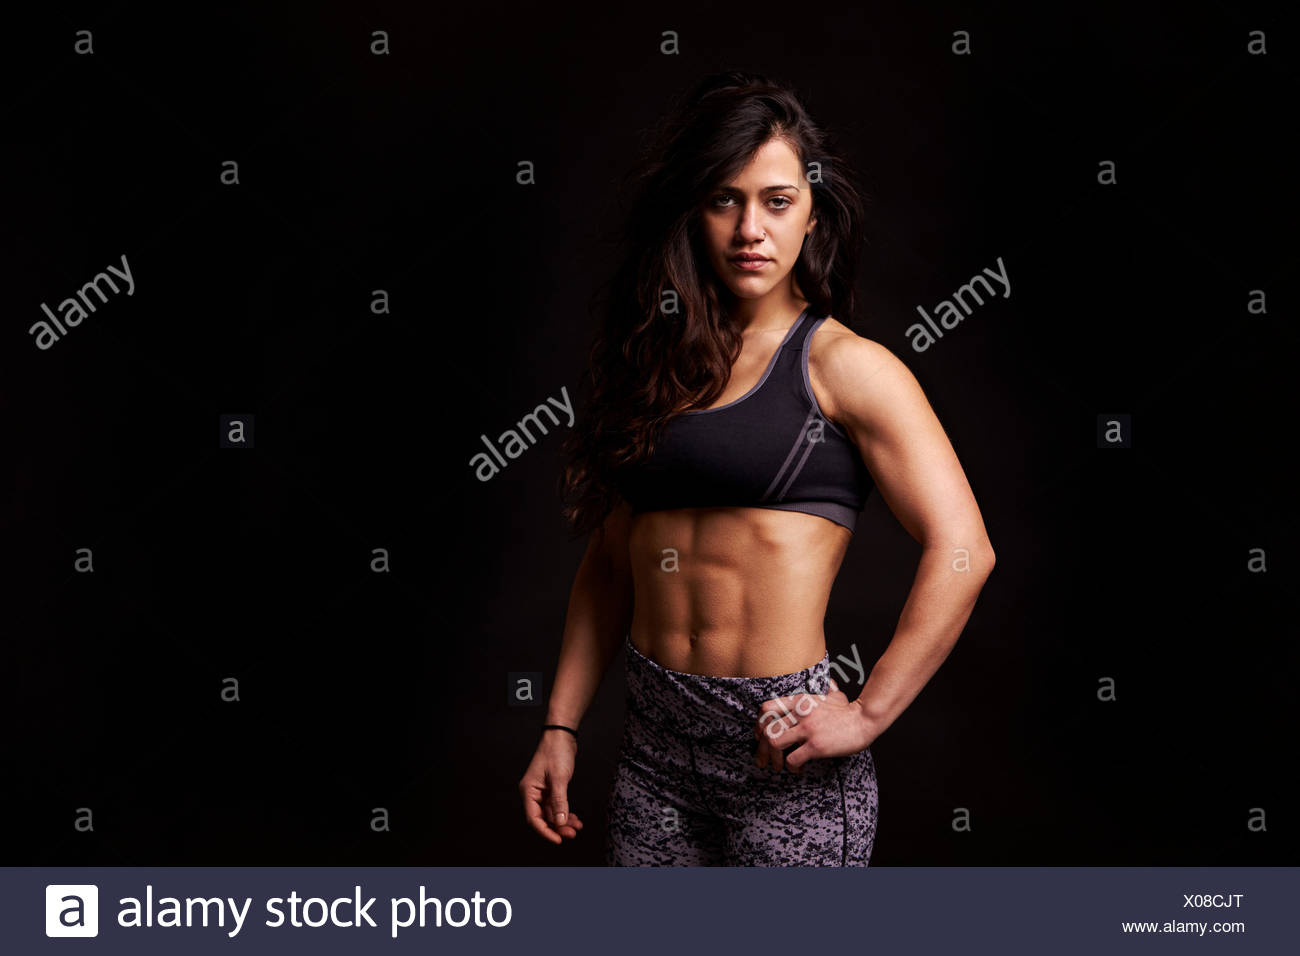 Waist up portrait of muscular dark haired young woman - Stock Image